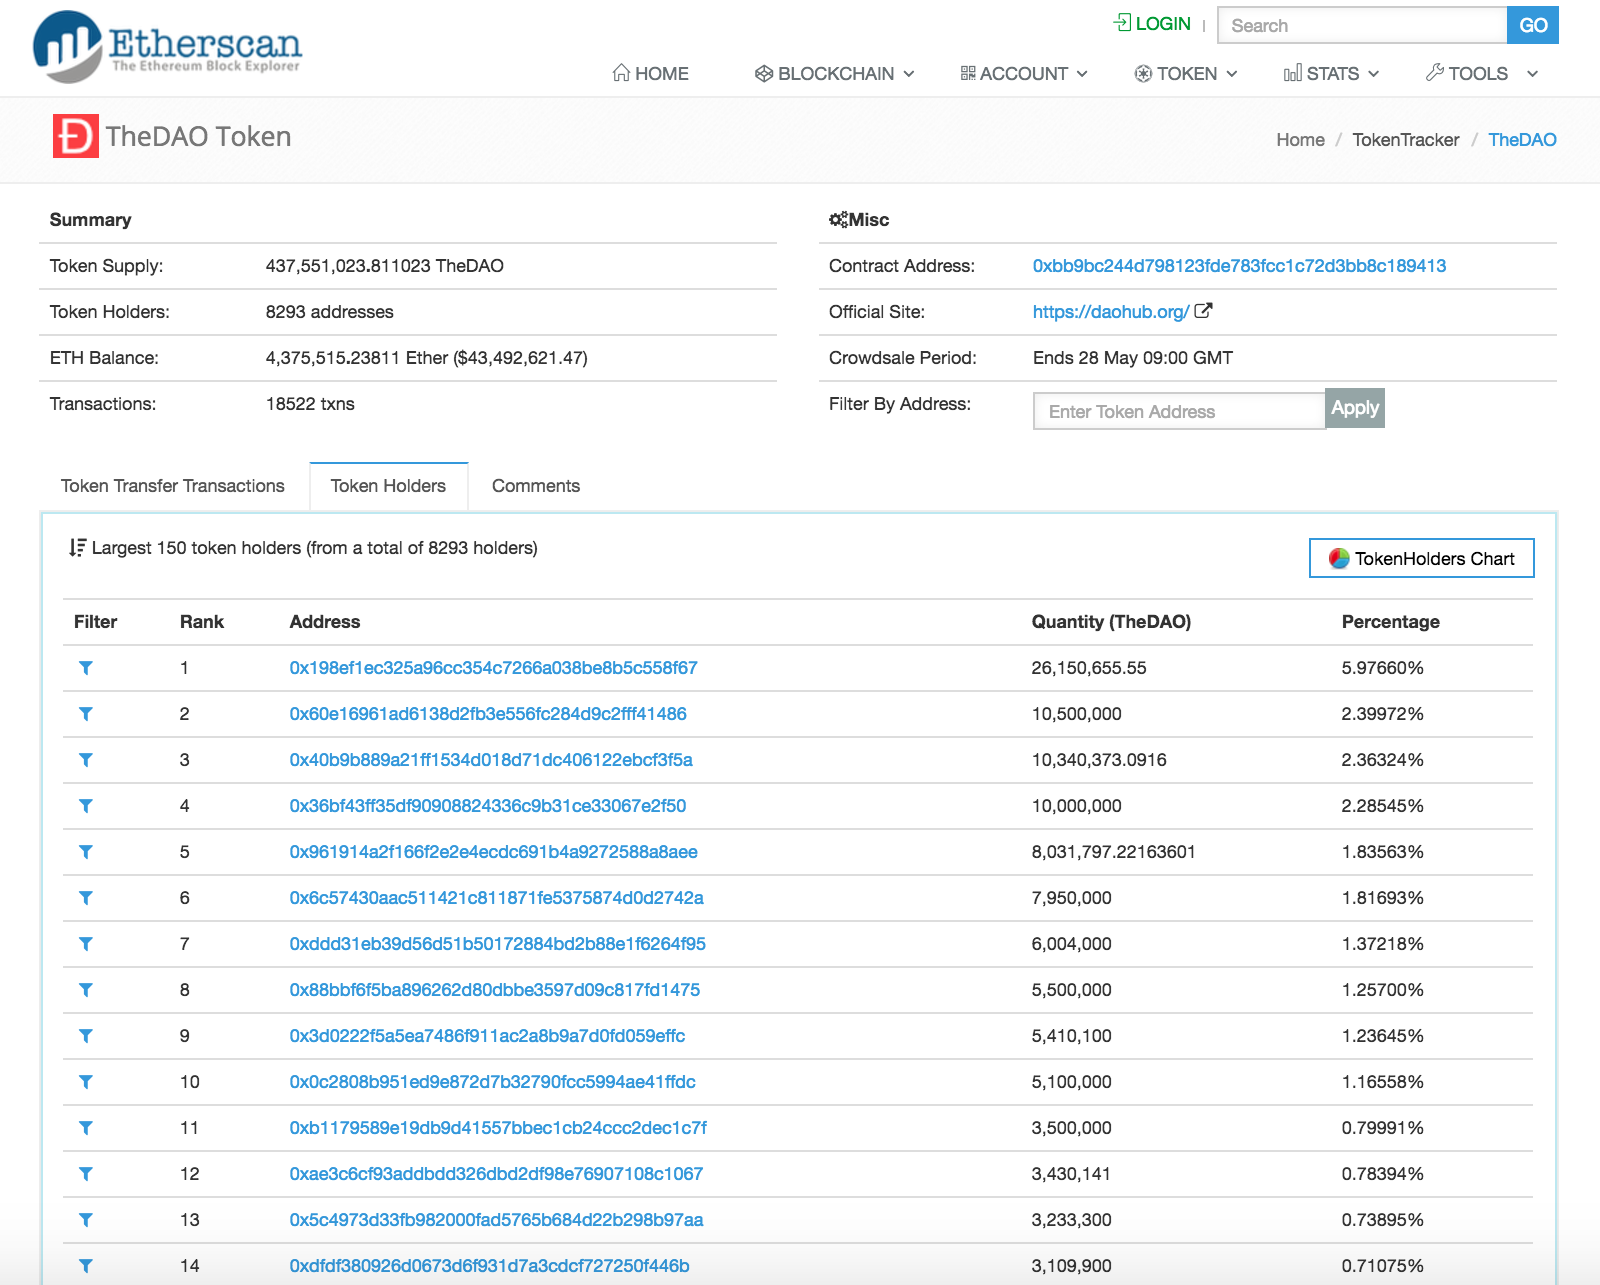 Etherscan-2016-05-11-4.28.33 PM